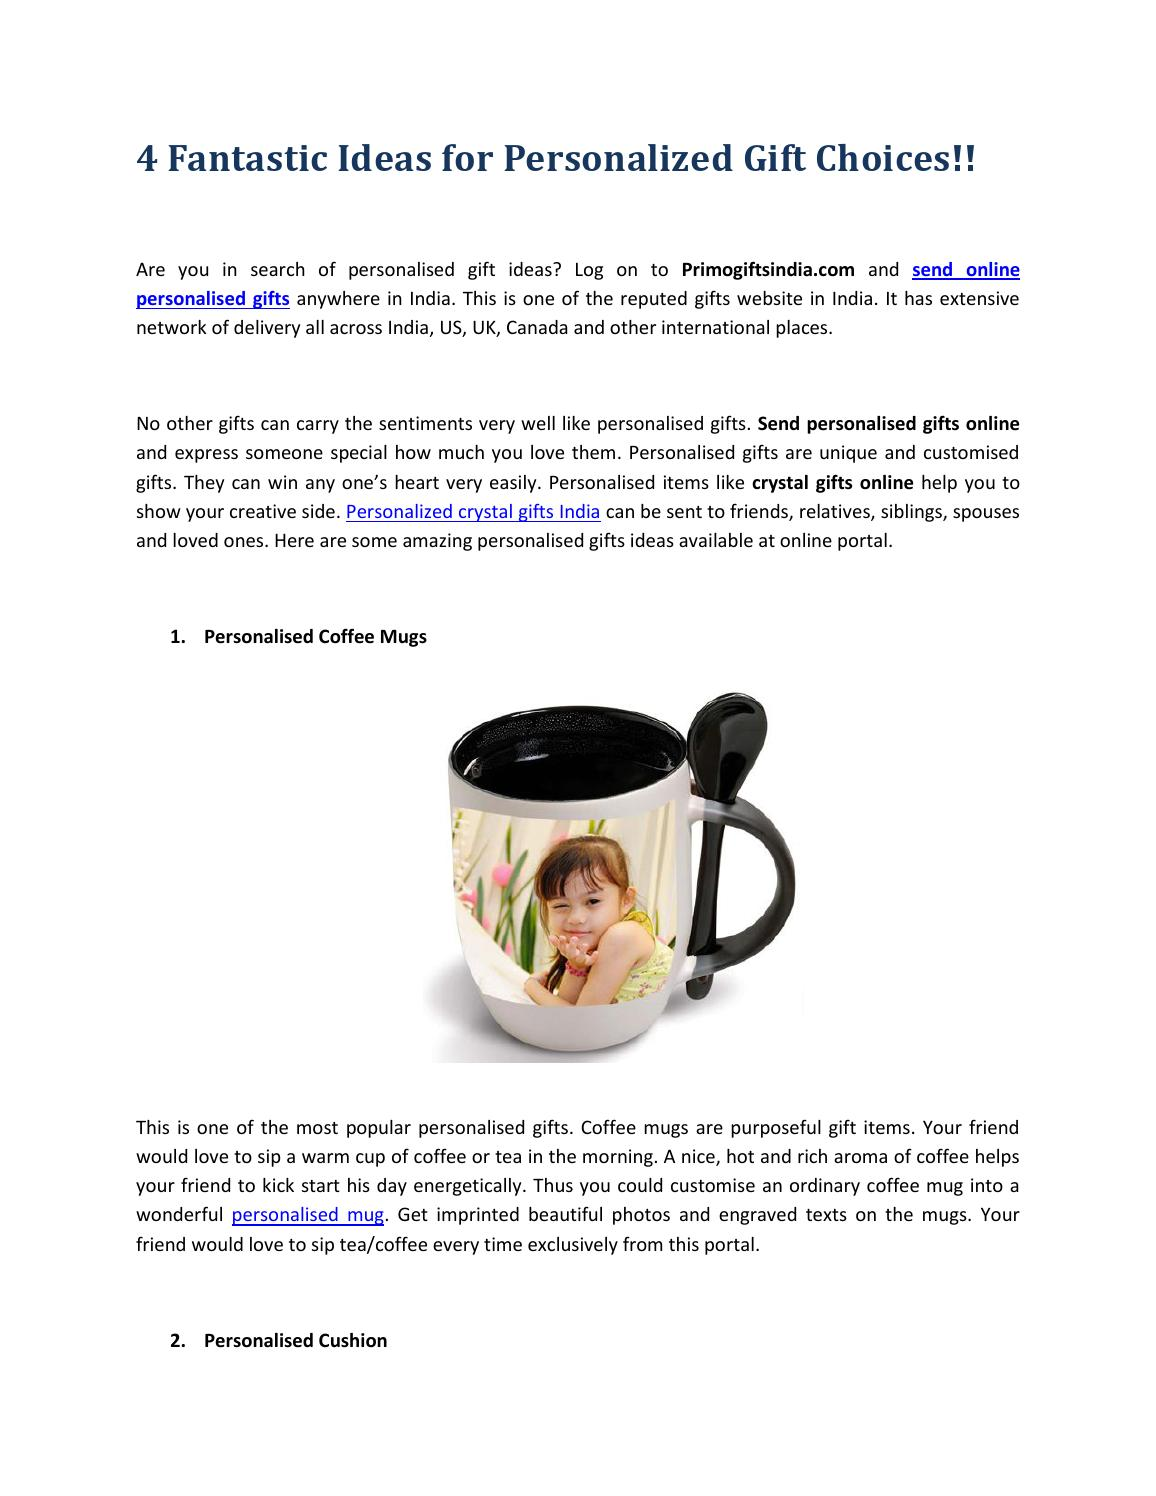 4 Fantastic Ideas For Personalized Gift Choices By Primo Gifts India Issuu